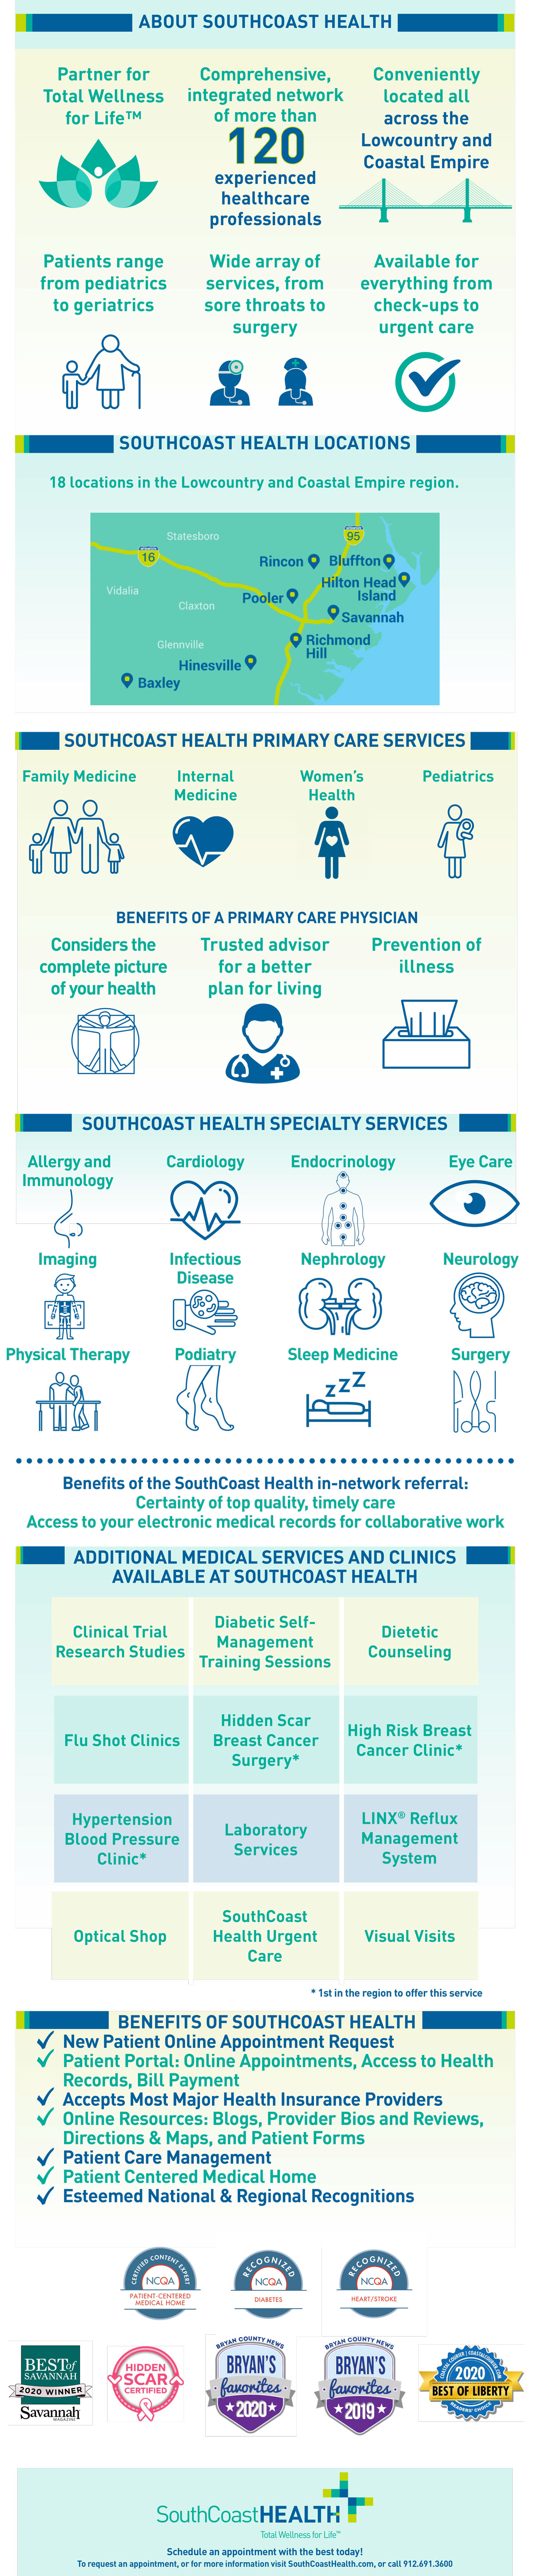 About SouthCoast Health - infographic